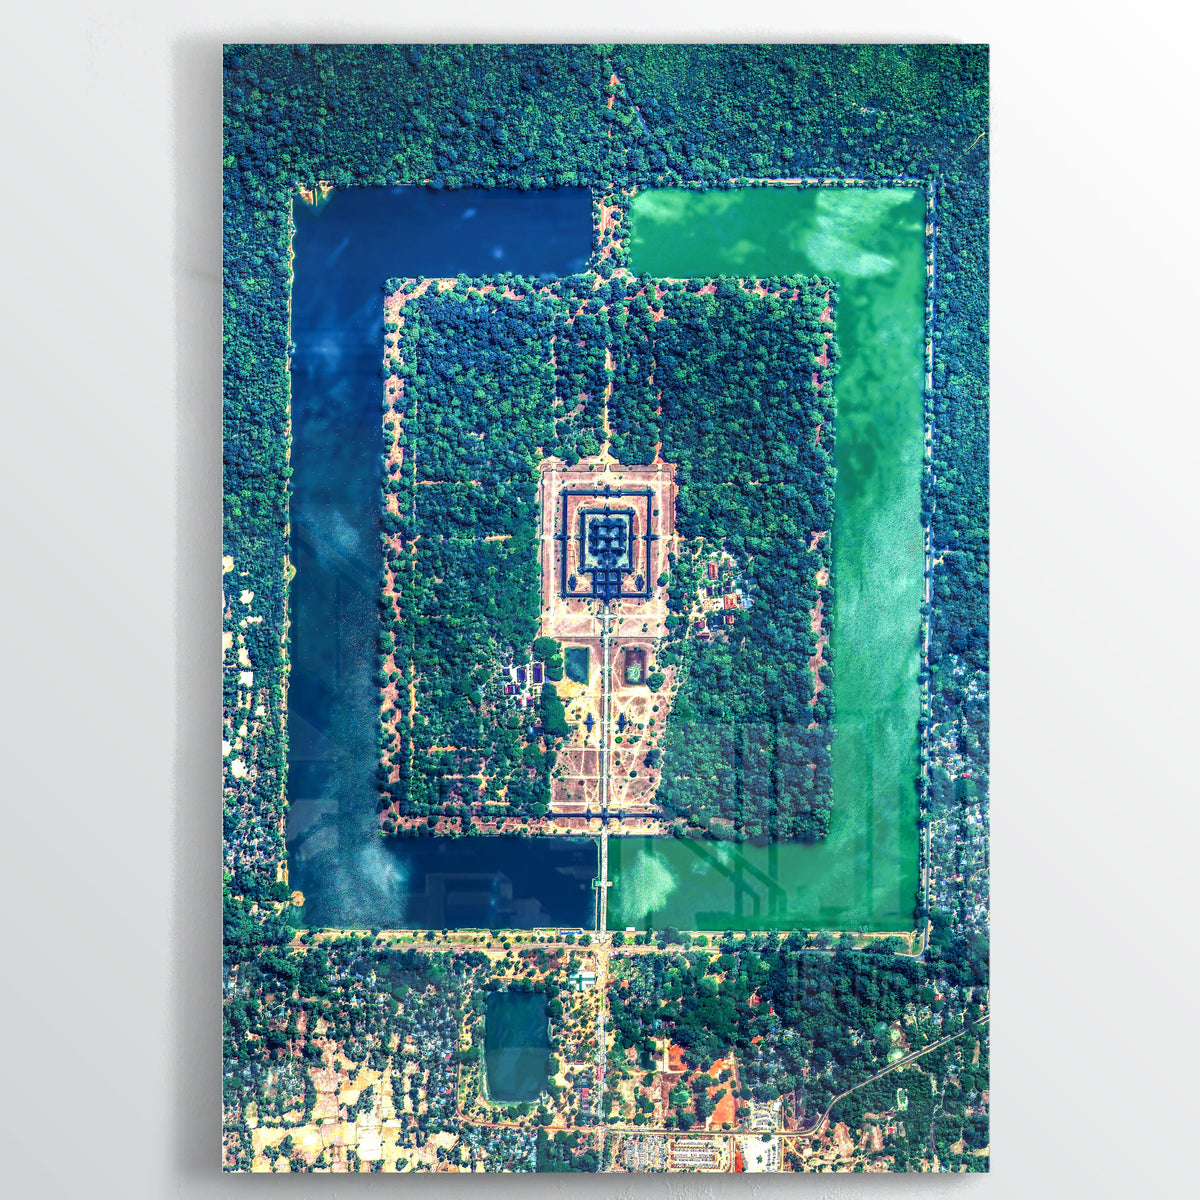 Angkor Wat Earth Photography - Floating Acrylic Art - Point Two Design